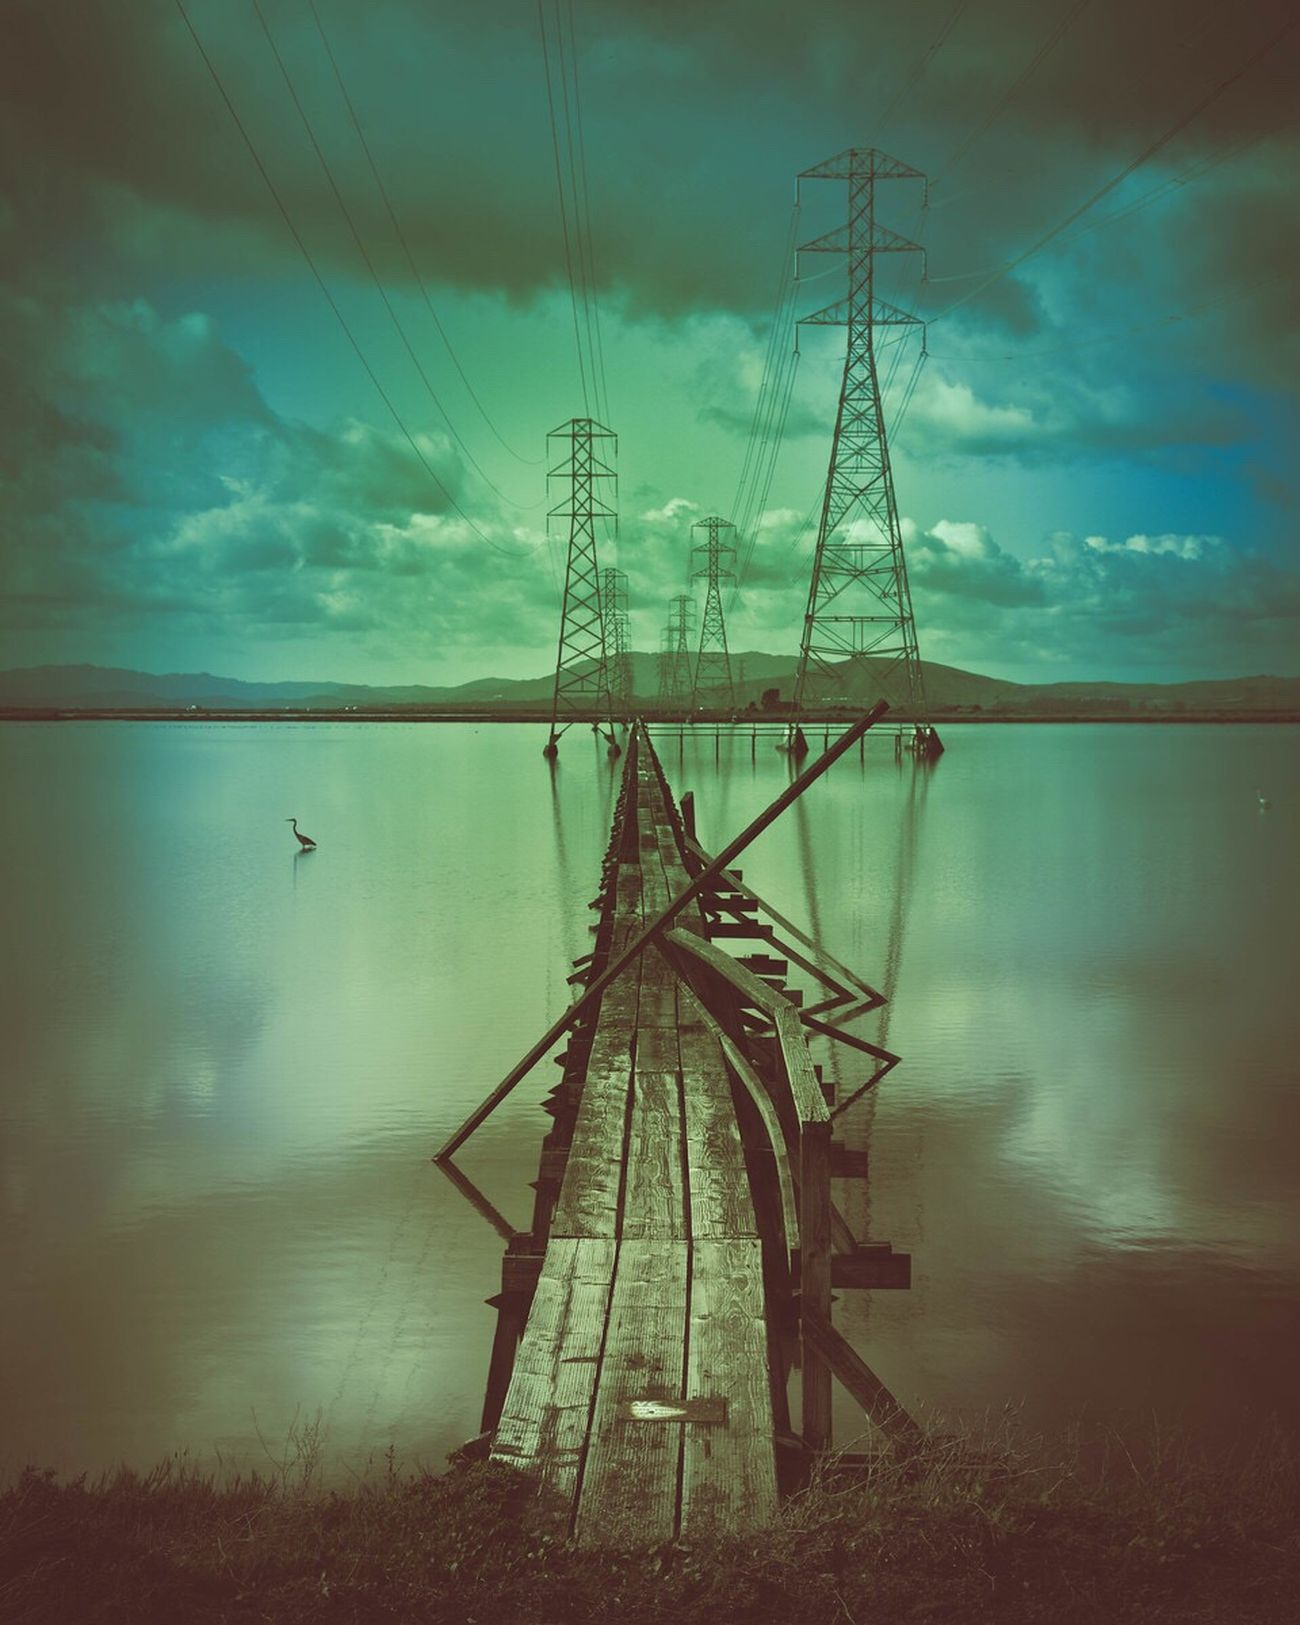 The road is narrow & lonely. IMYE Loudthougts Kik Sky Cable Cloud - Sky Water Power Line  Electricity  No People Connection Power Supply Outdoors Electricity Pylon Scenics Nature Electricity Tower Day Architecture Instamood Eye4photography  Taking Photos Sunset Sunrise EyeEm Best Shots